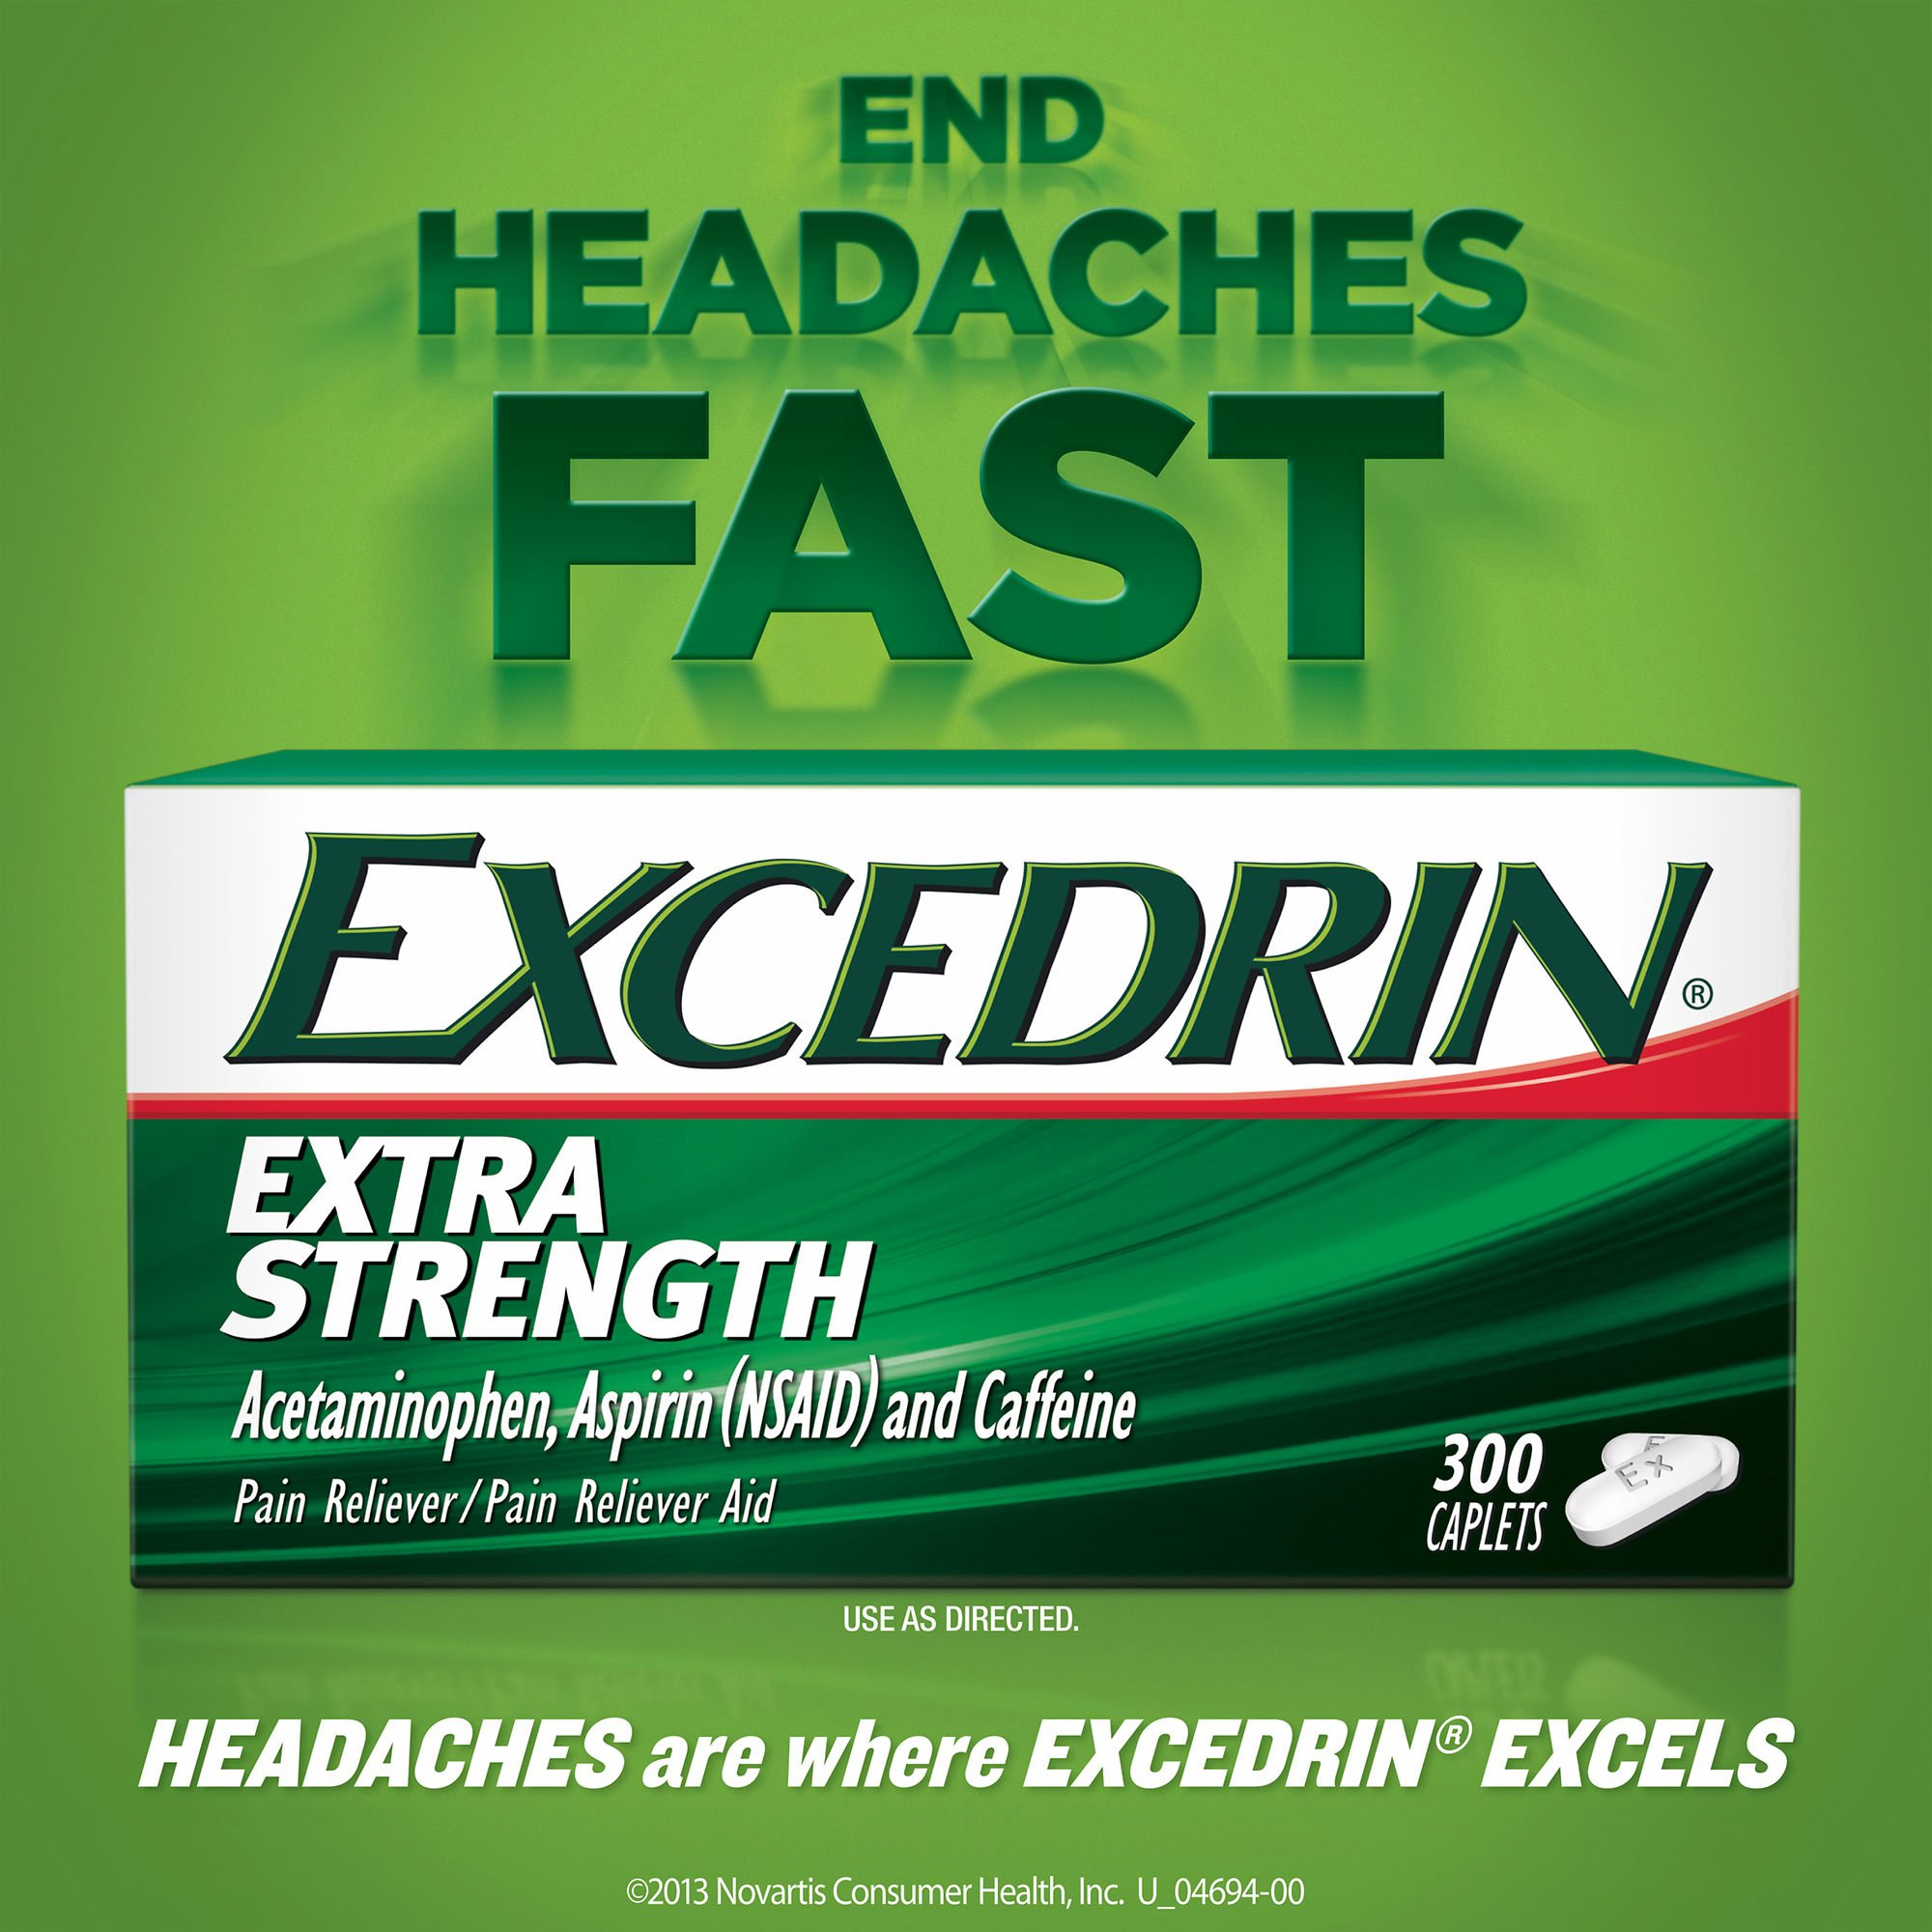 Excedrin Extra-Strength Caplets, 300 ct. (pack of 6)